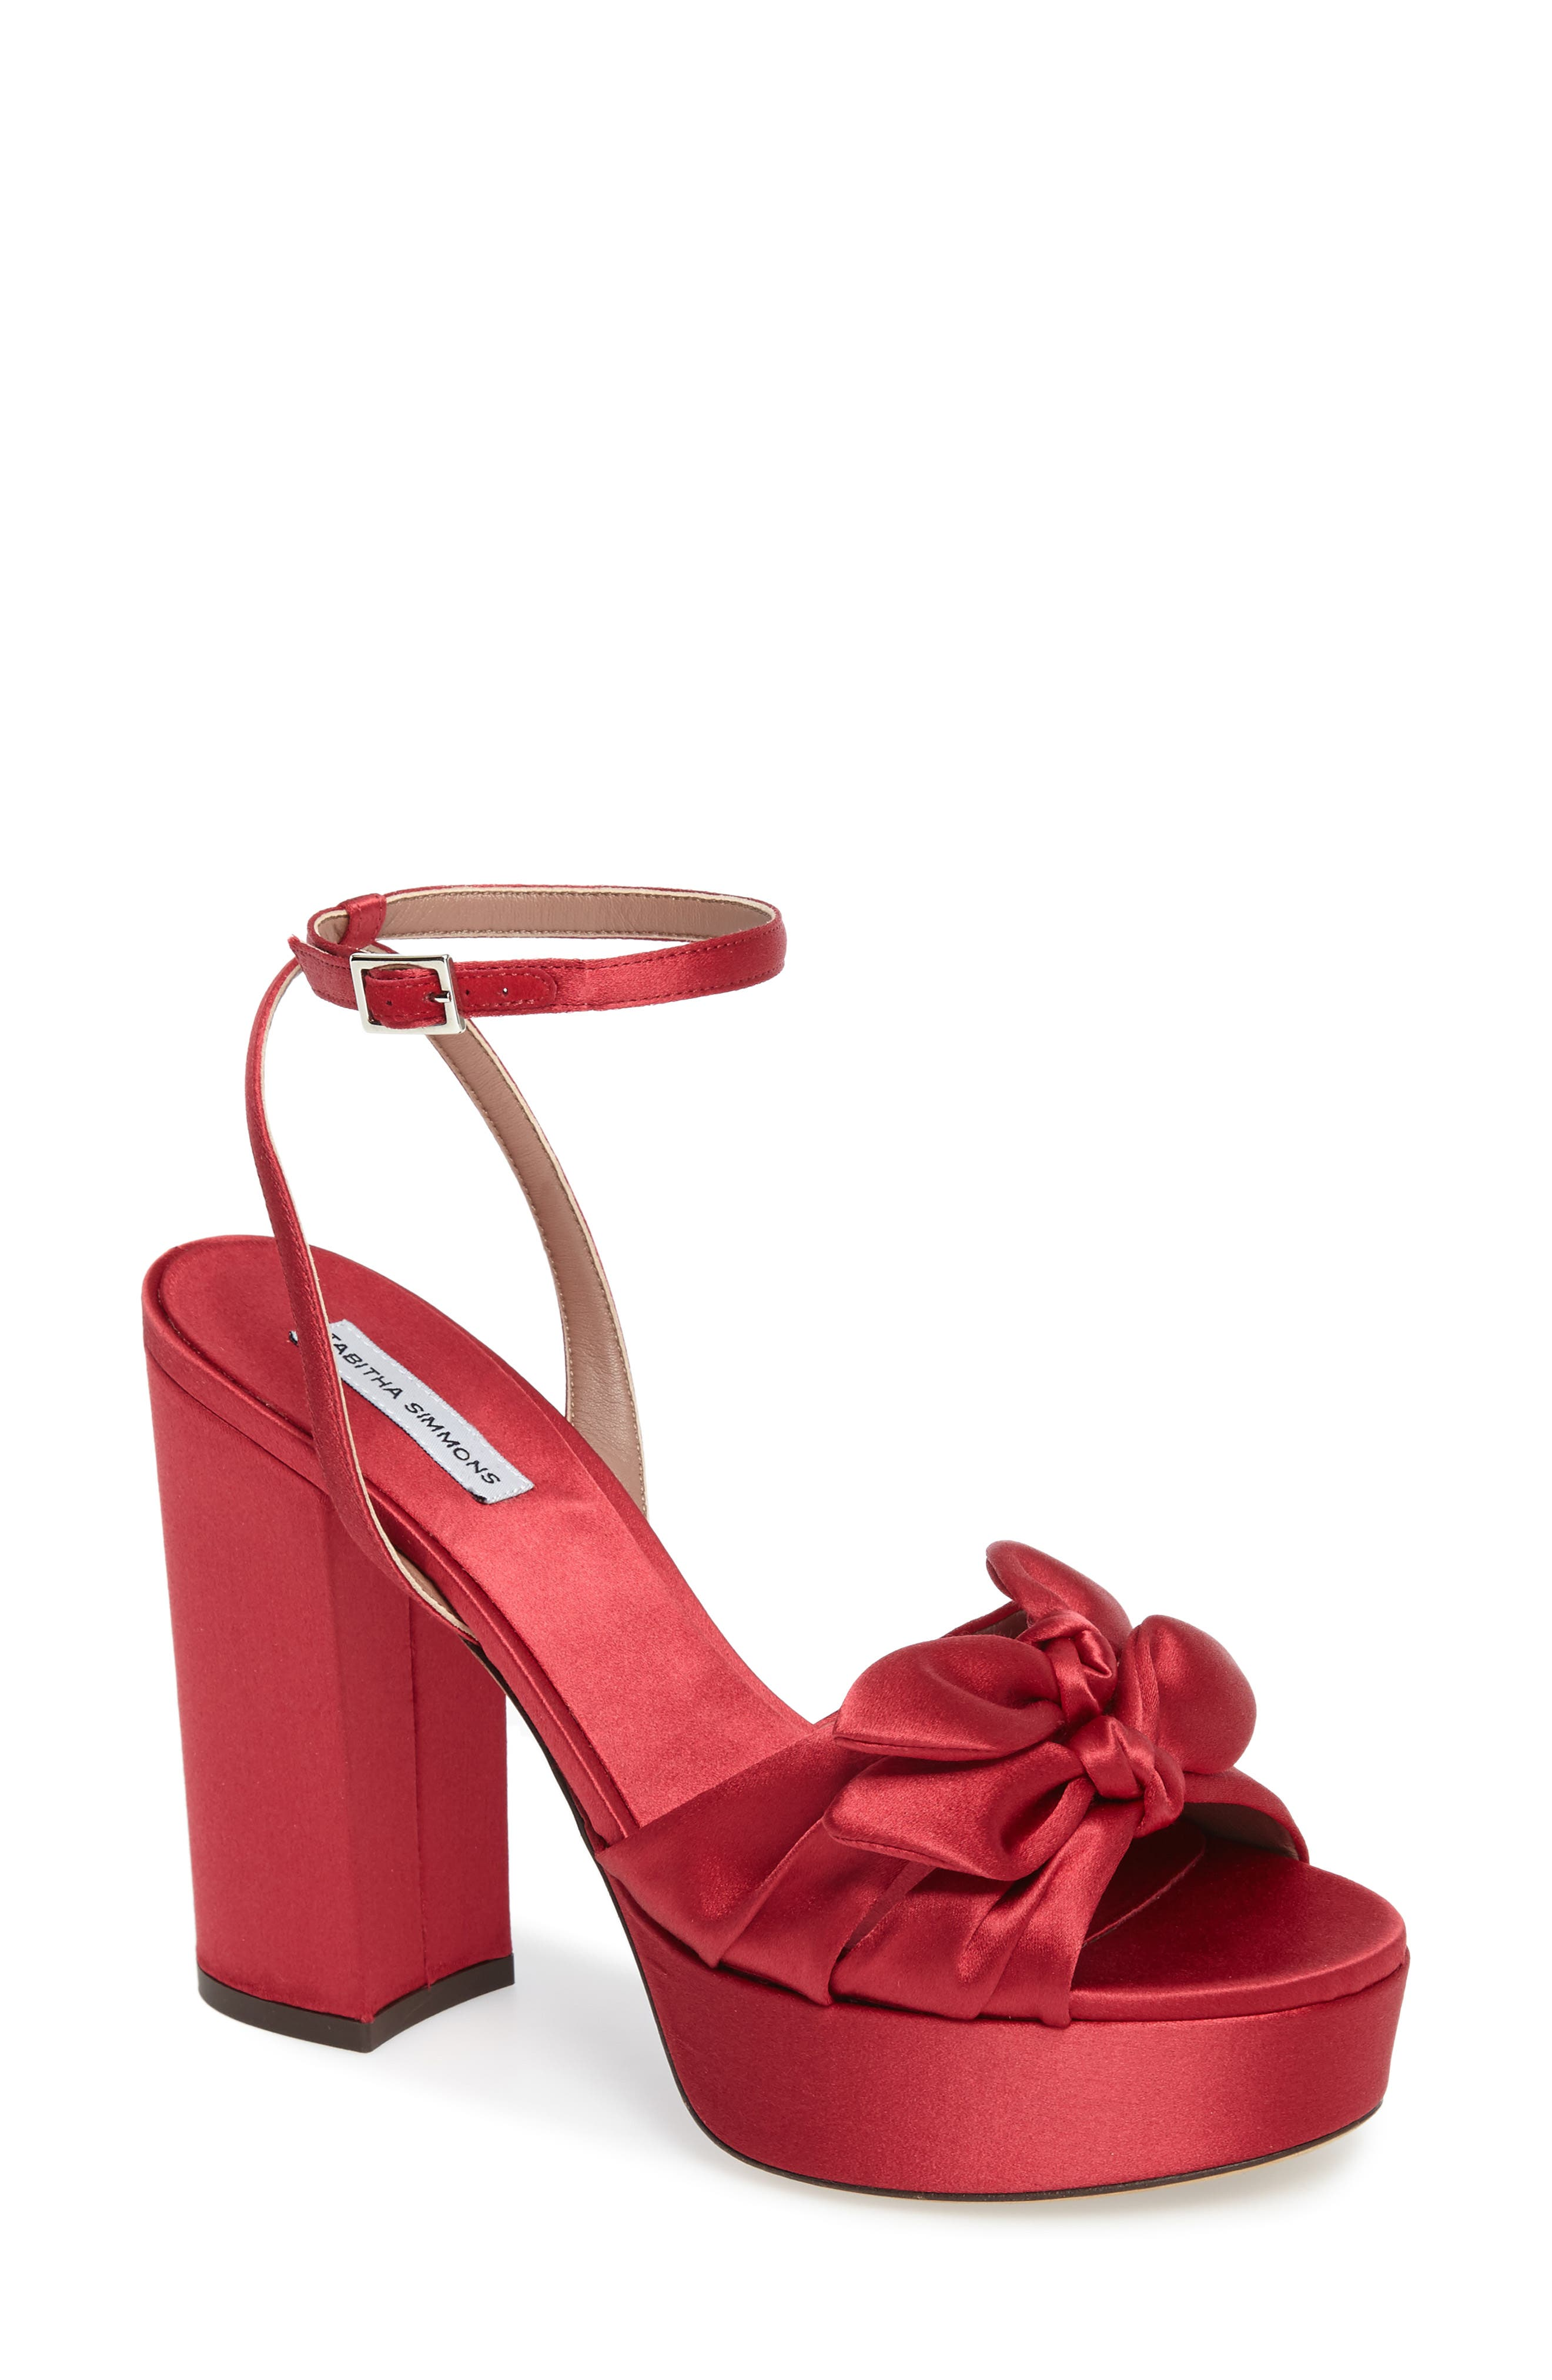 Alternate Image 1 Selected - Tabitha Simmons Jodie Platform Sandal (Women)